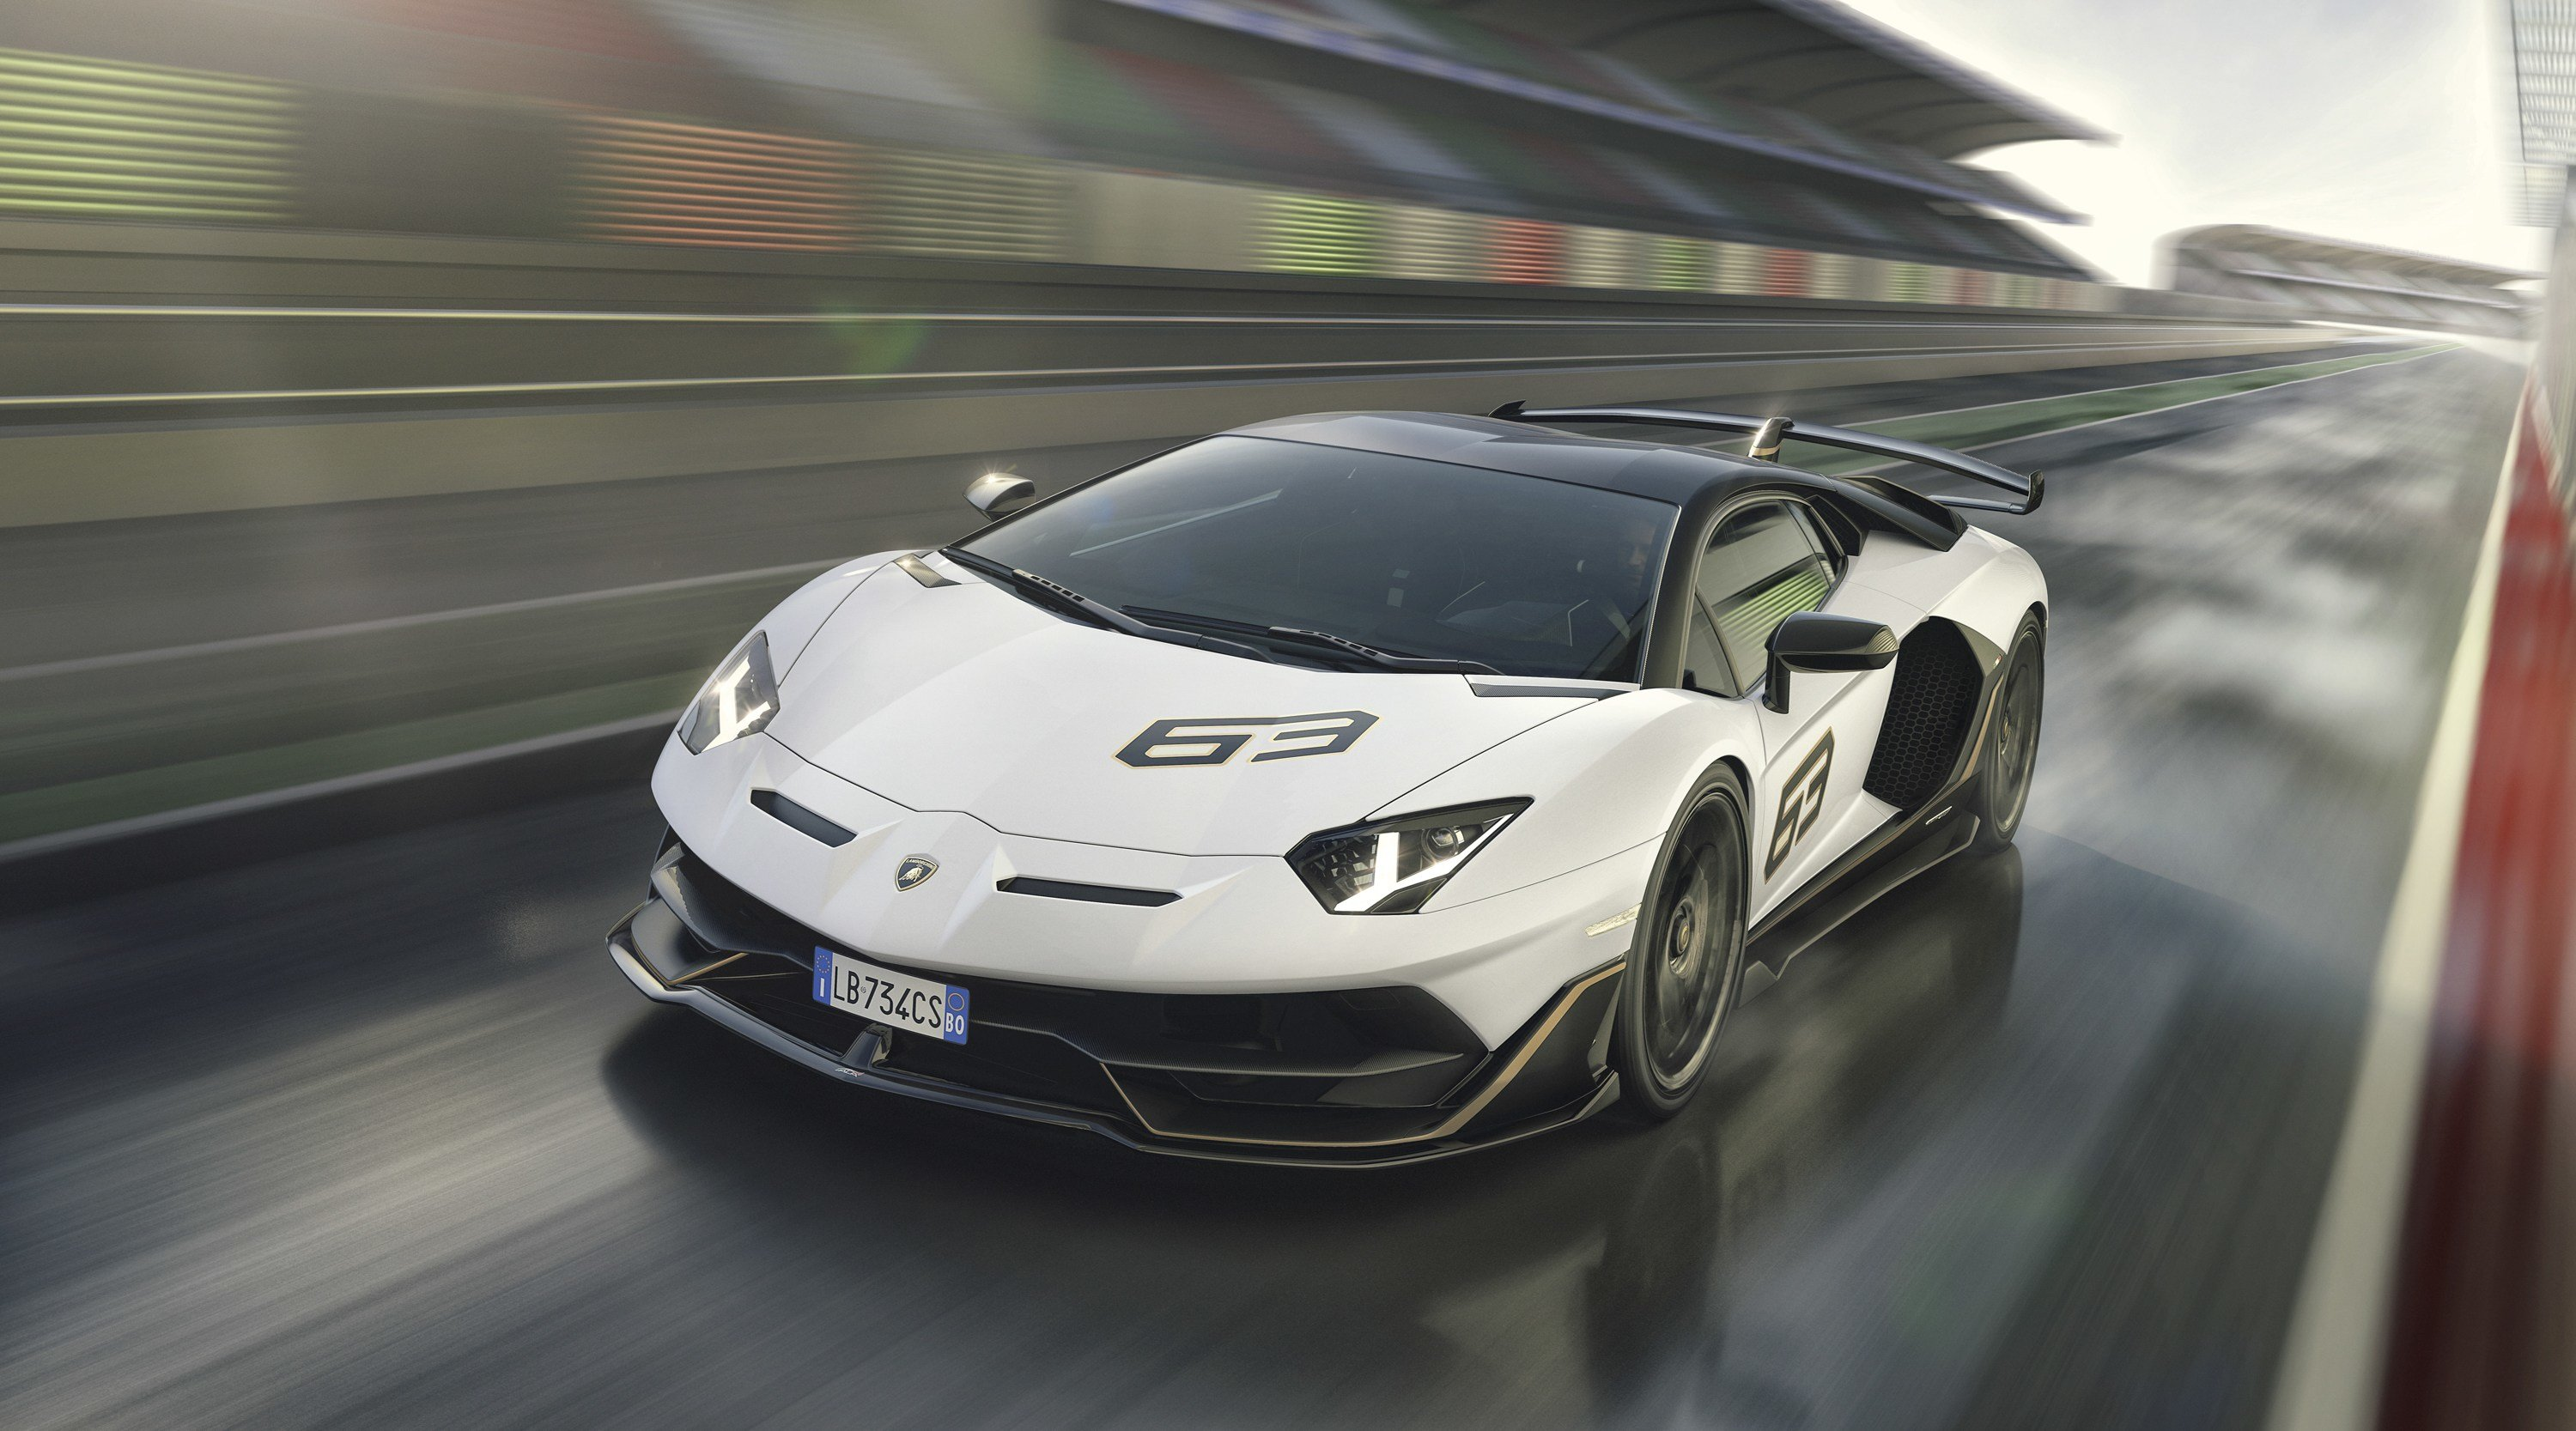 Latest 5 Incredible Facts About The New Lamborghini Aventador Svj Free Download